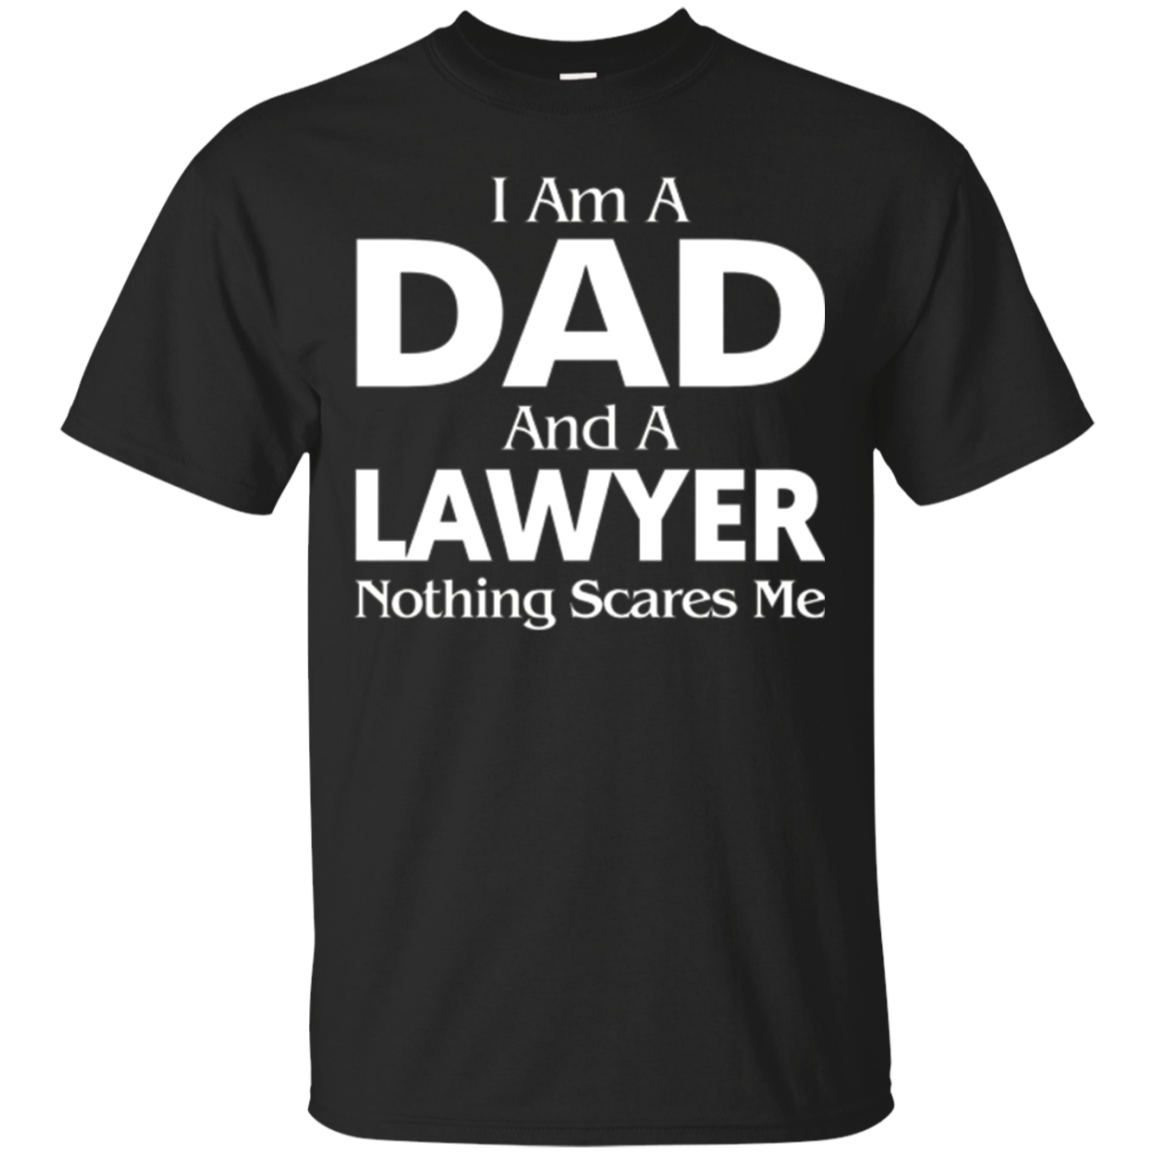 I AM A DAD AND A LAWYER NOTHING SCARES ME SHIRT